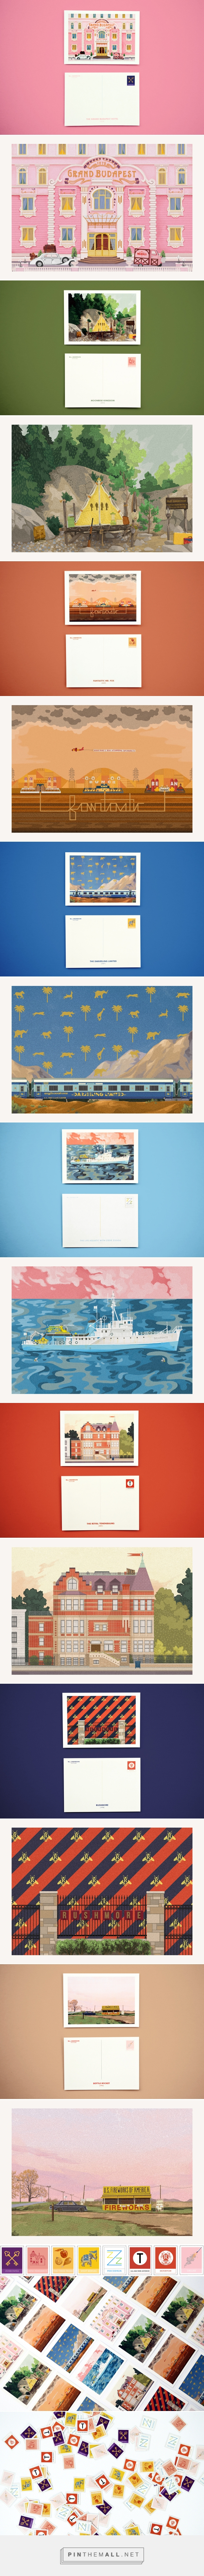 Wes Anderson Postcards by: Mark Dingo Francisco on Behance